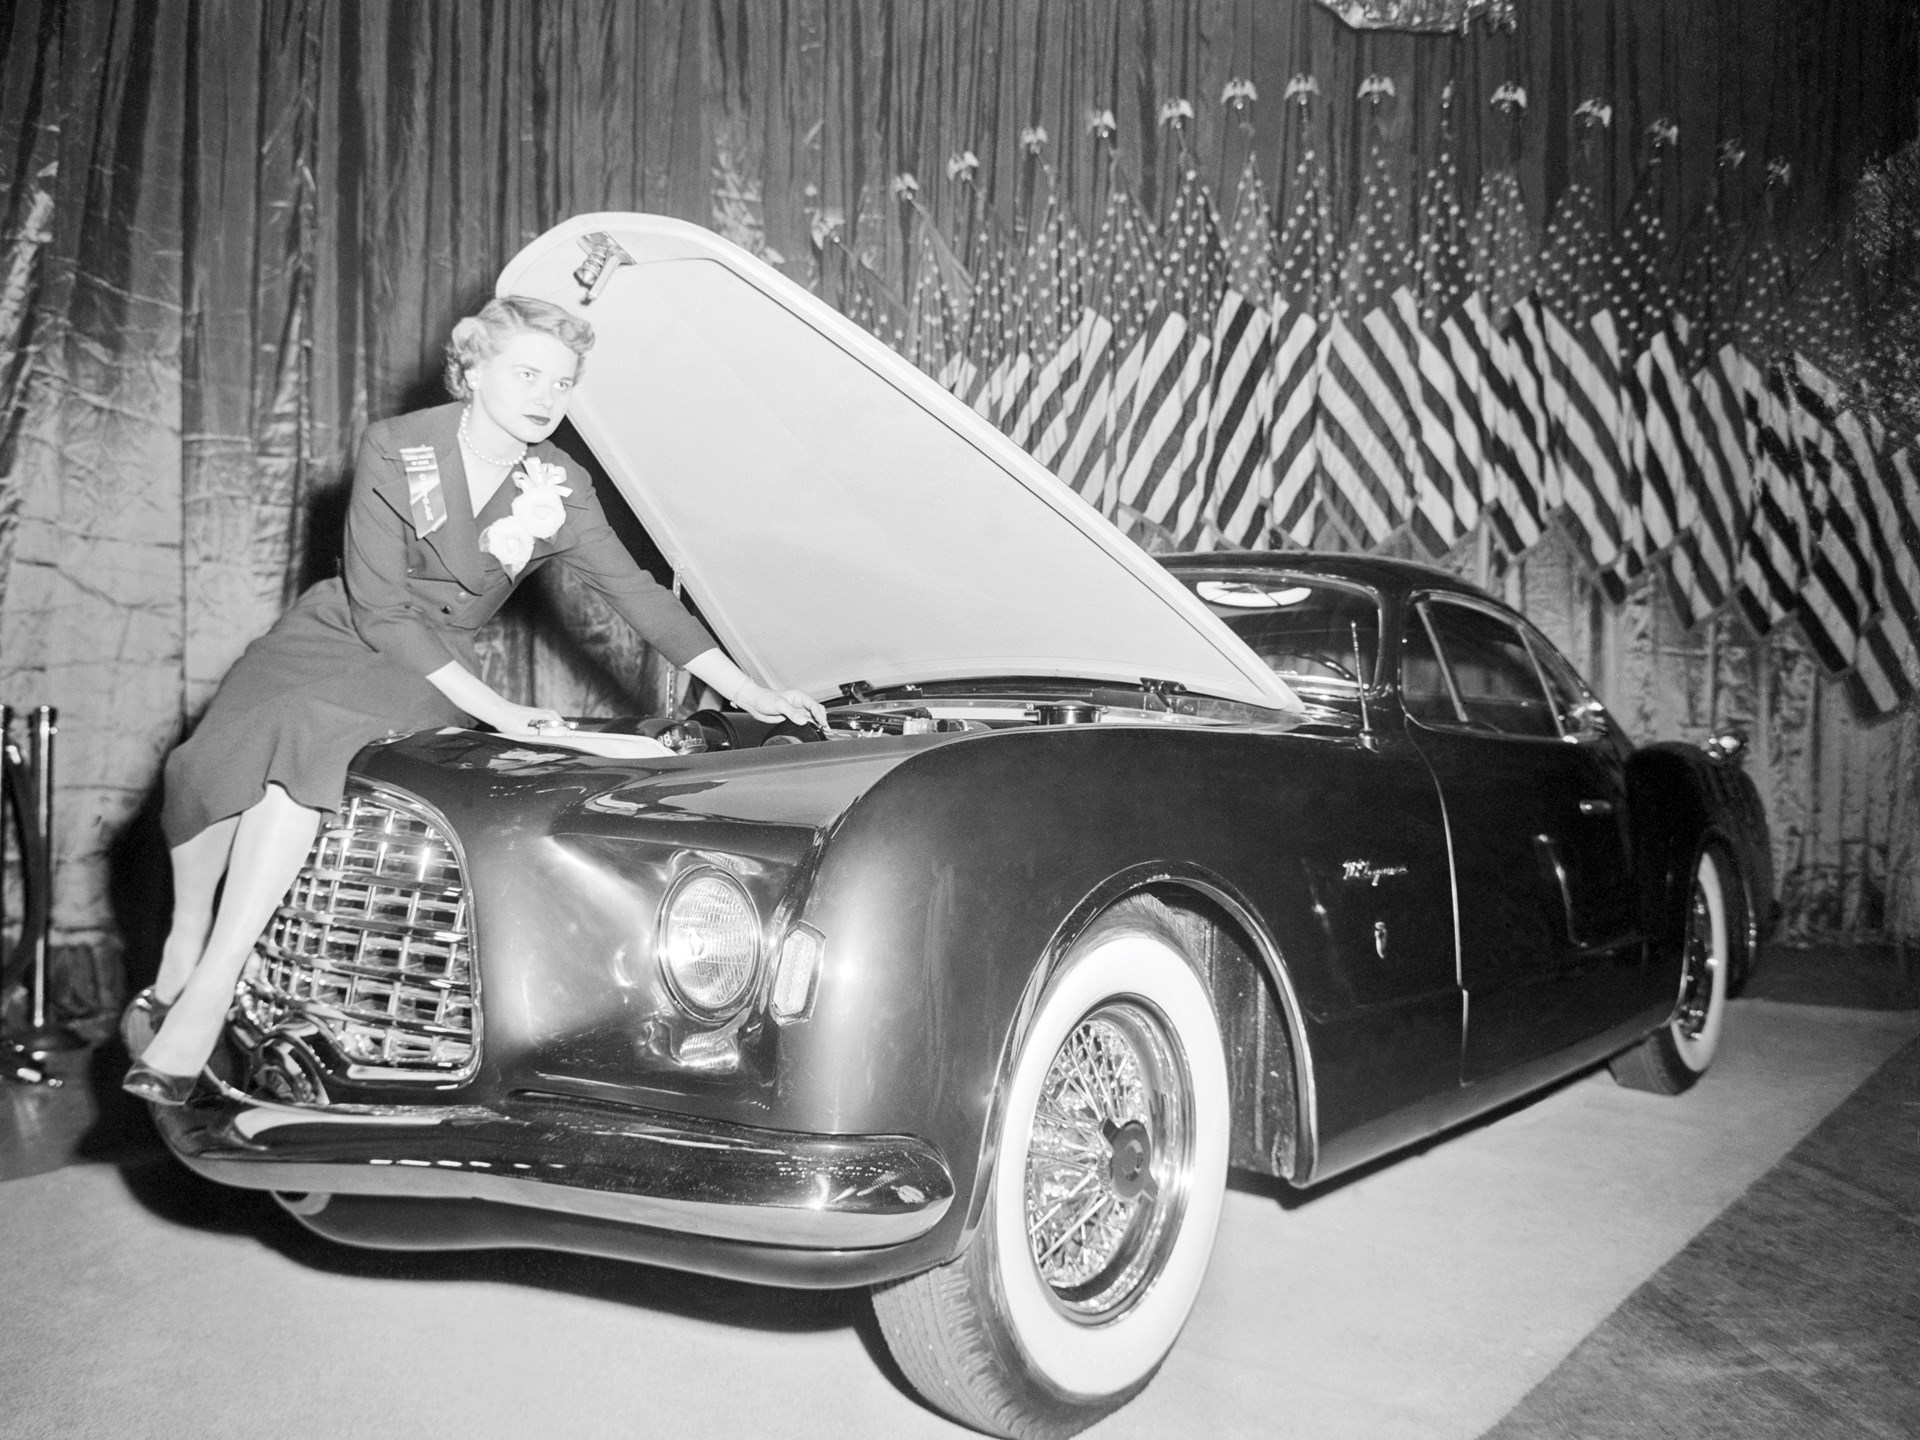 Chrysler engineer Lucille Pieti makes last minute adjustments on the new Chrysler D'Elegance at the Easter Parade of Stars at the Waldorf-Astoria in New York.